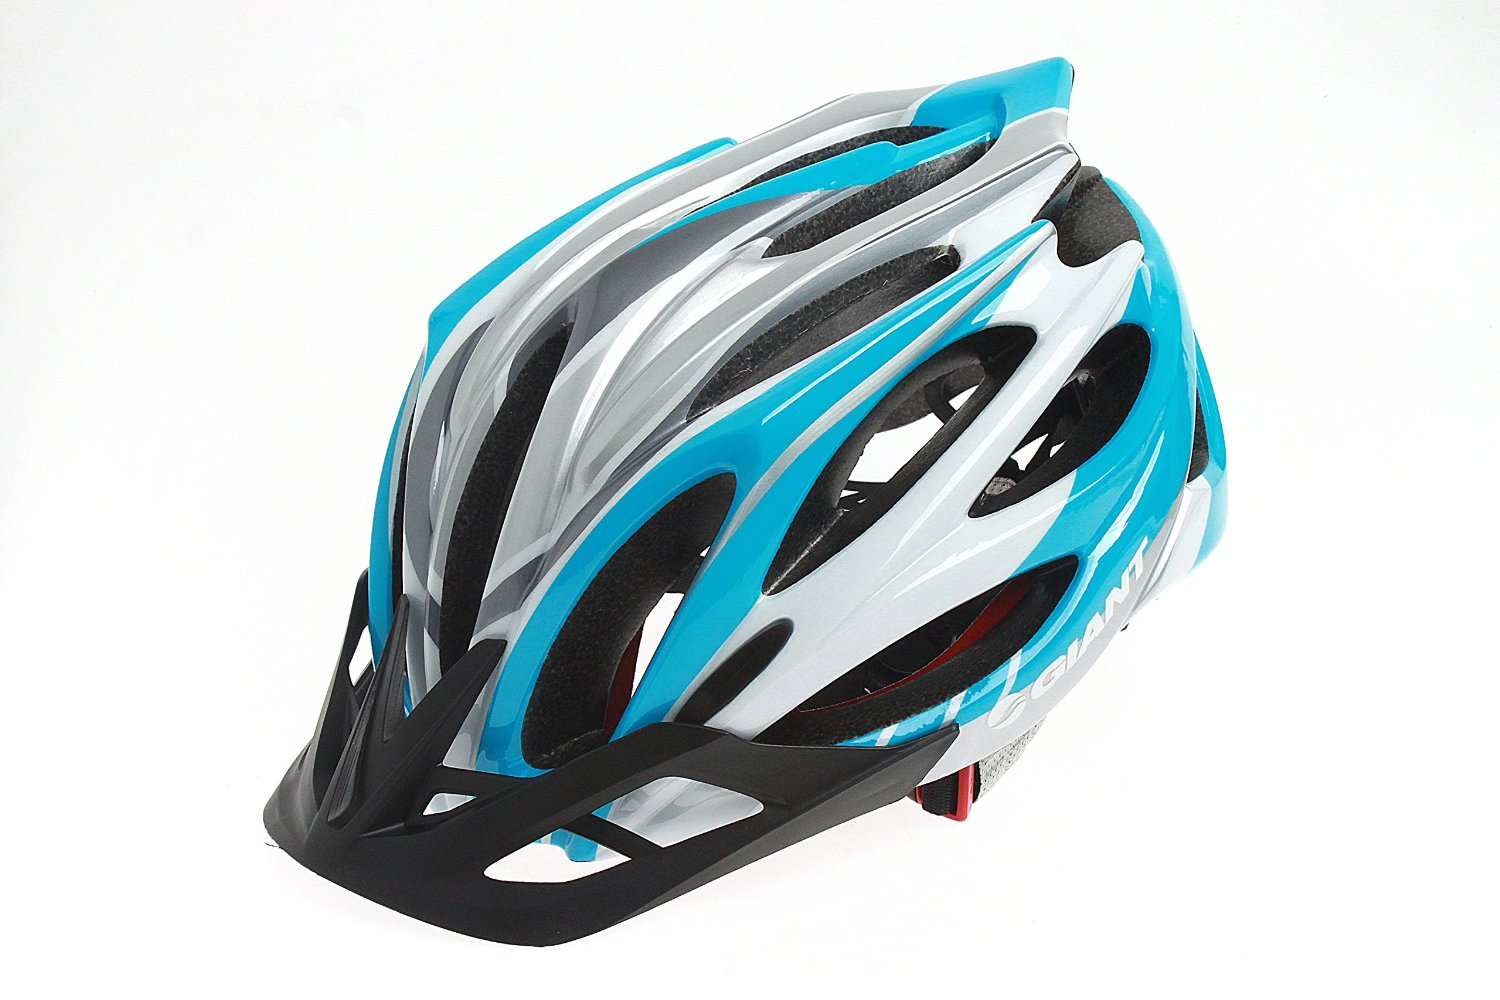 Best Selling Giant Bicycle Helmets